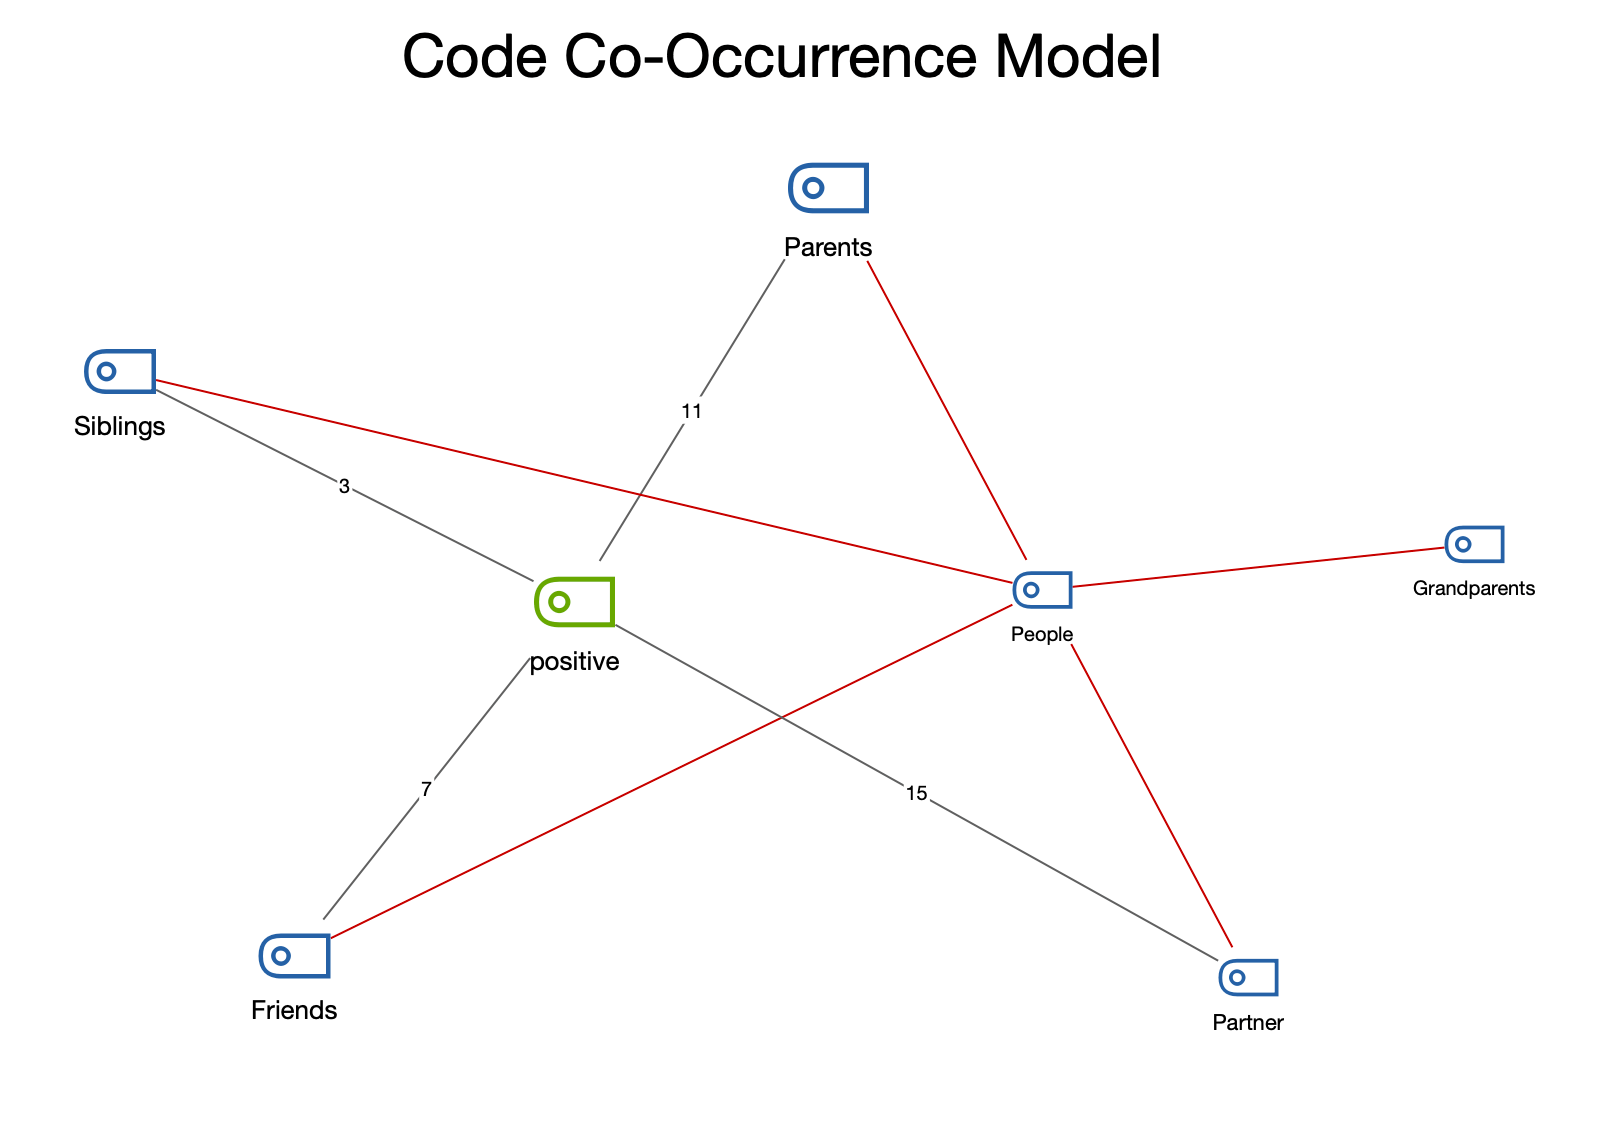 The Code Co-Occurrence Model